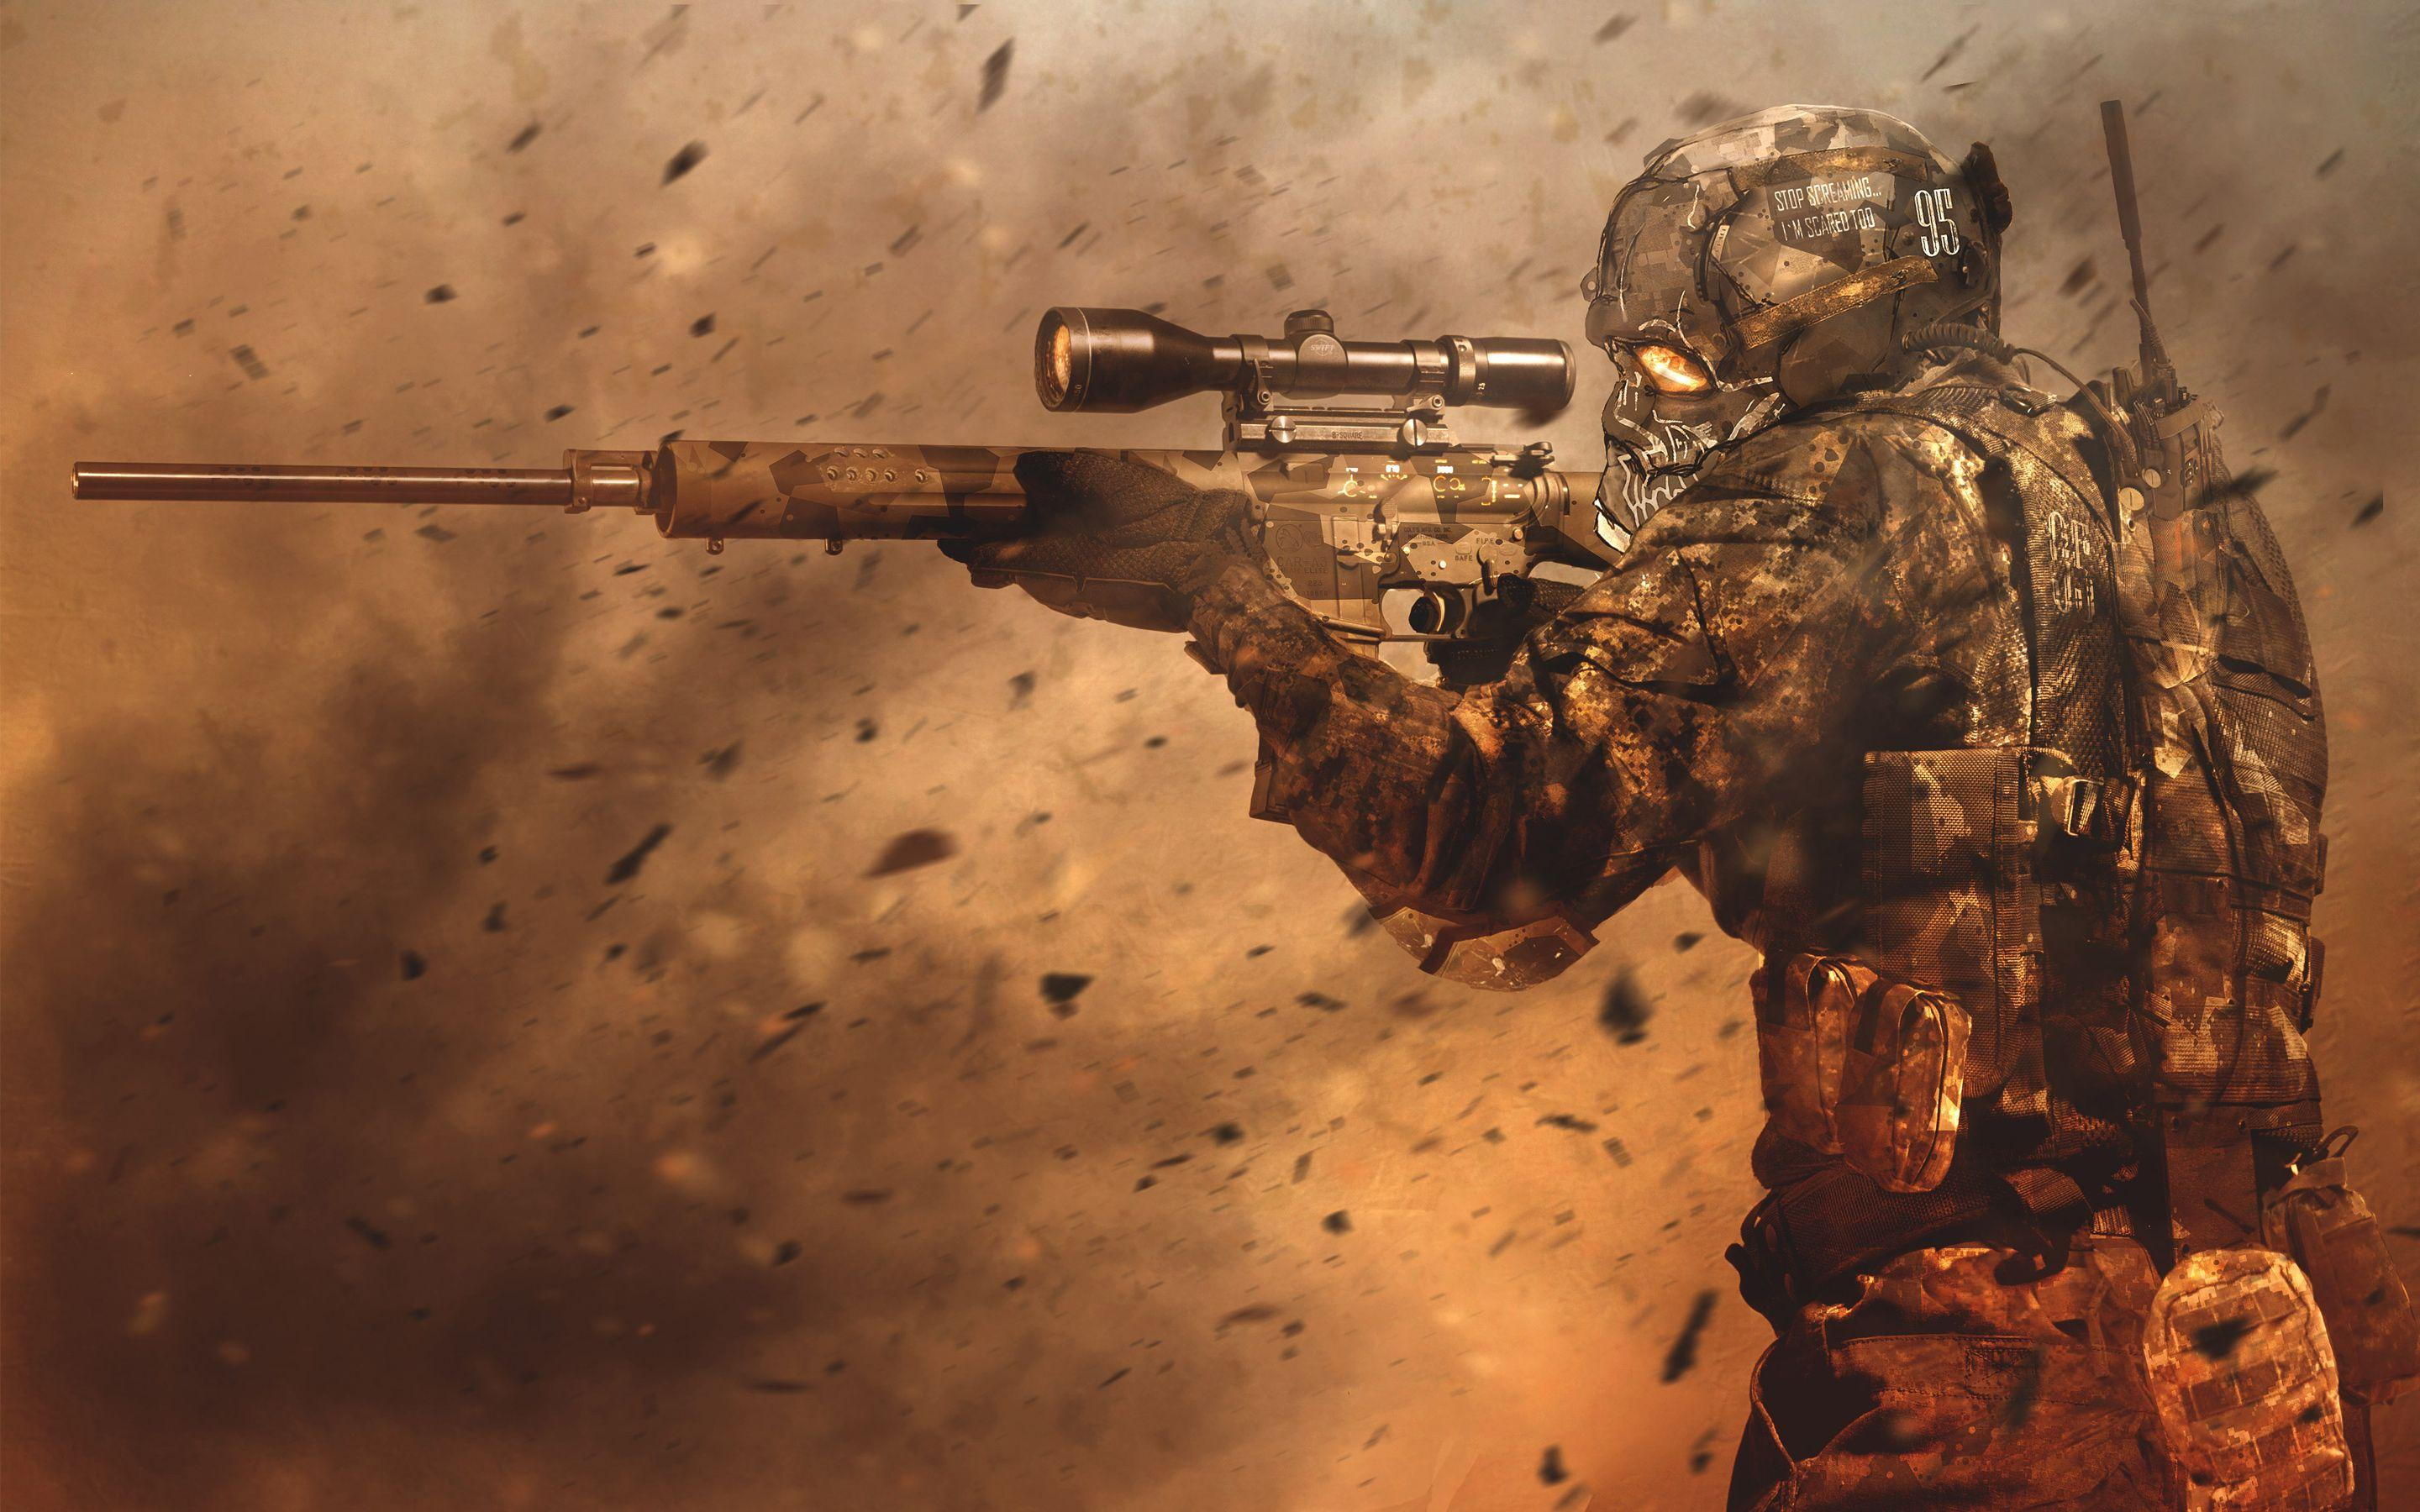 Sniper Hd Wallpapers Wallpaper Cave